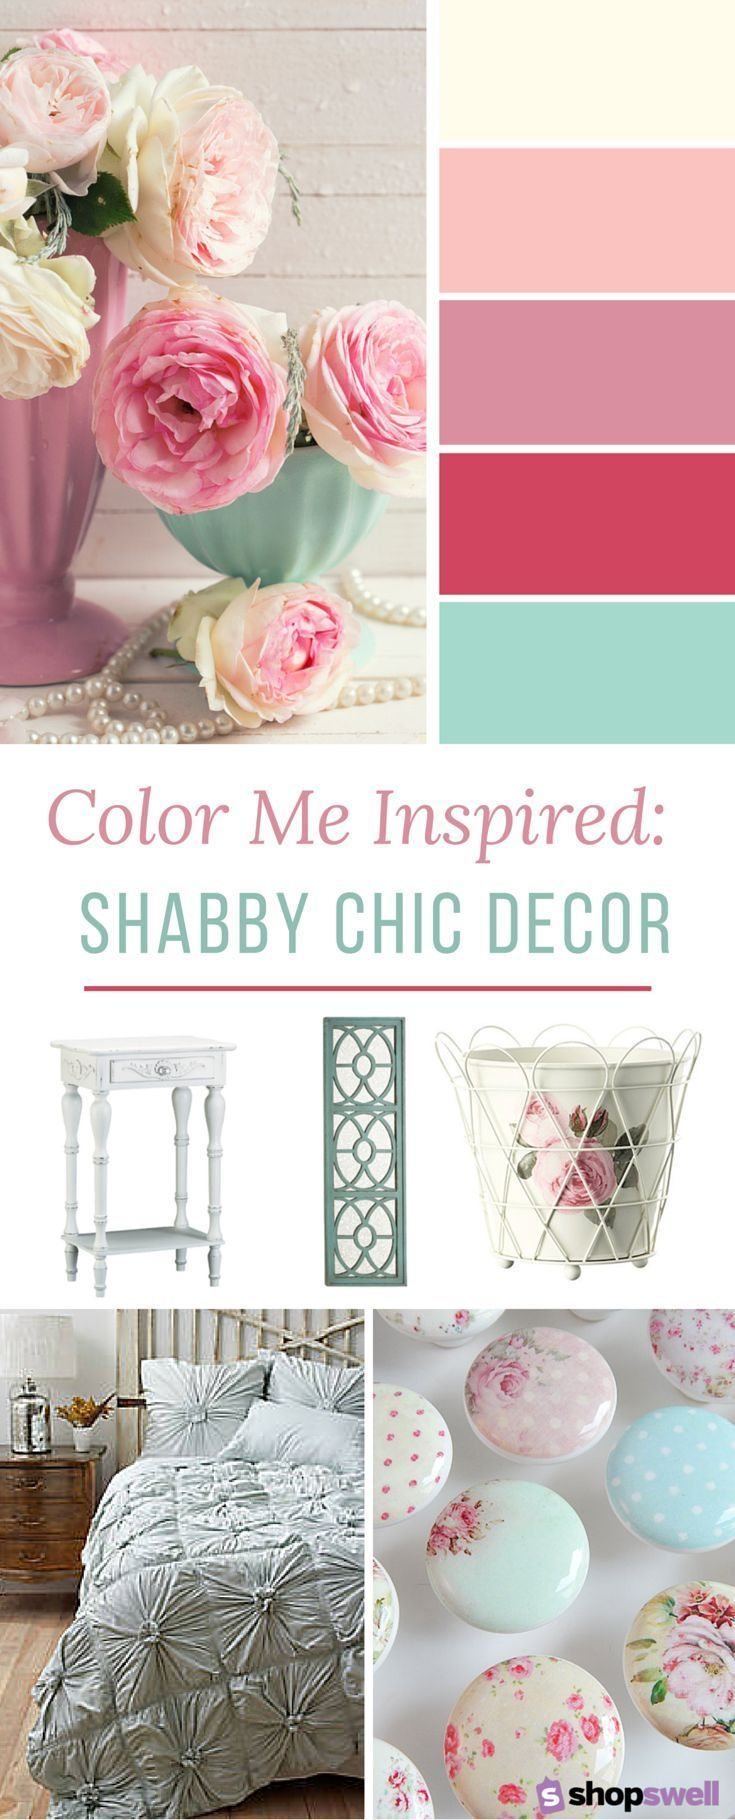 20 Home Decor Essentials for the Shabby Chic Bedroom